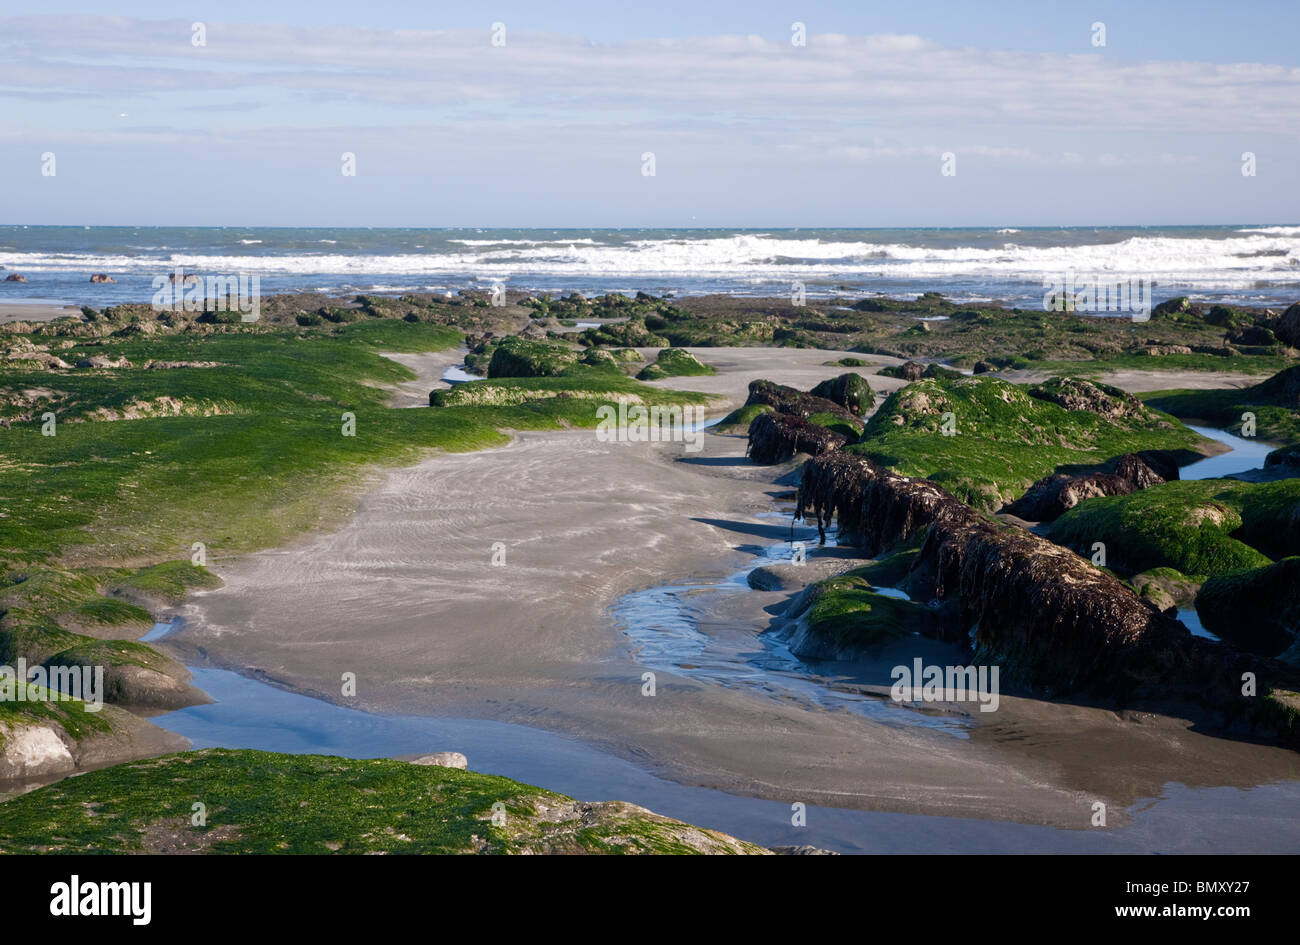 Minus tide, Pacific North Coast, exposing stone structures & marine flora. - Stock Image